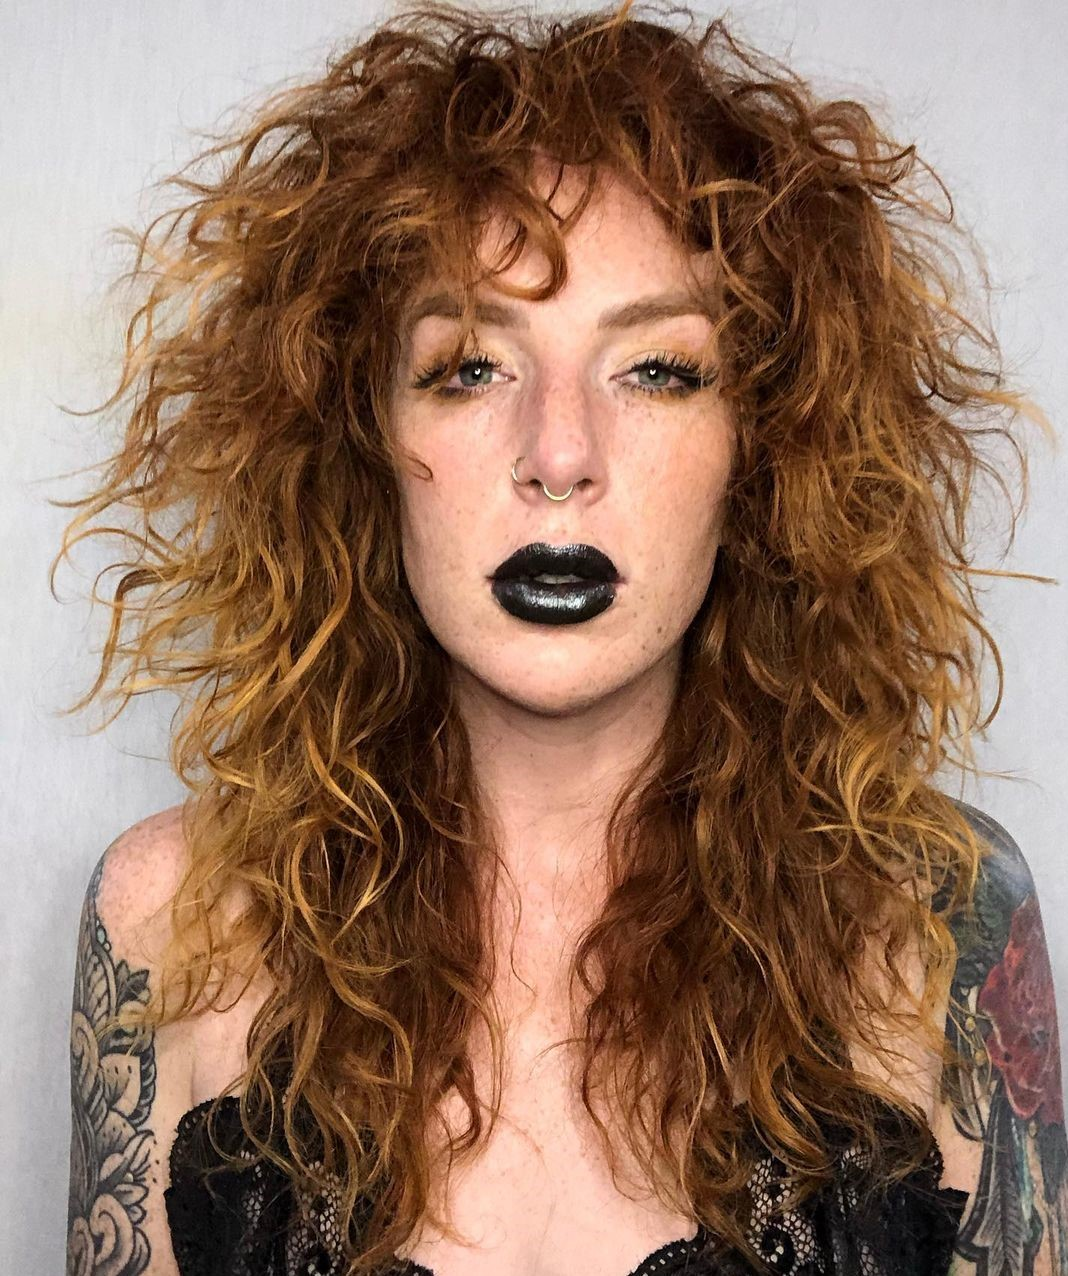 Curly Hairstyle with Bangs for a Thin Face